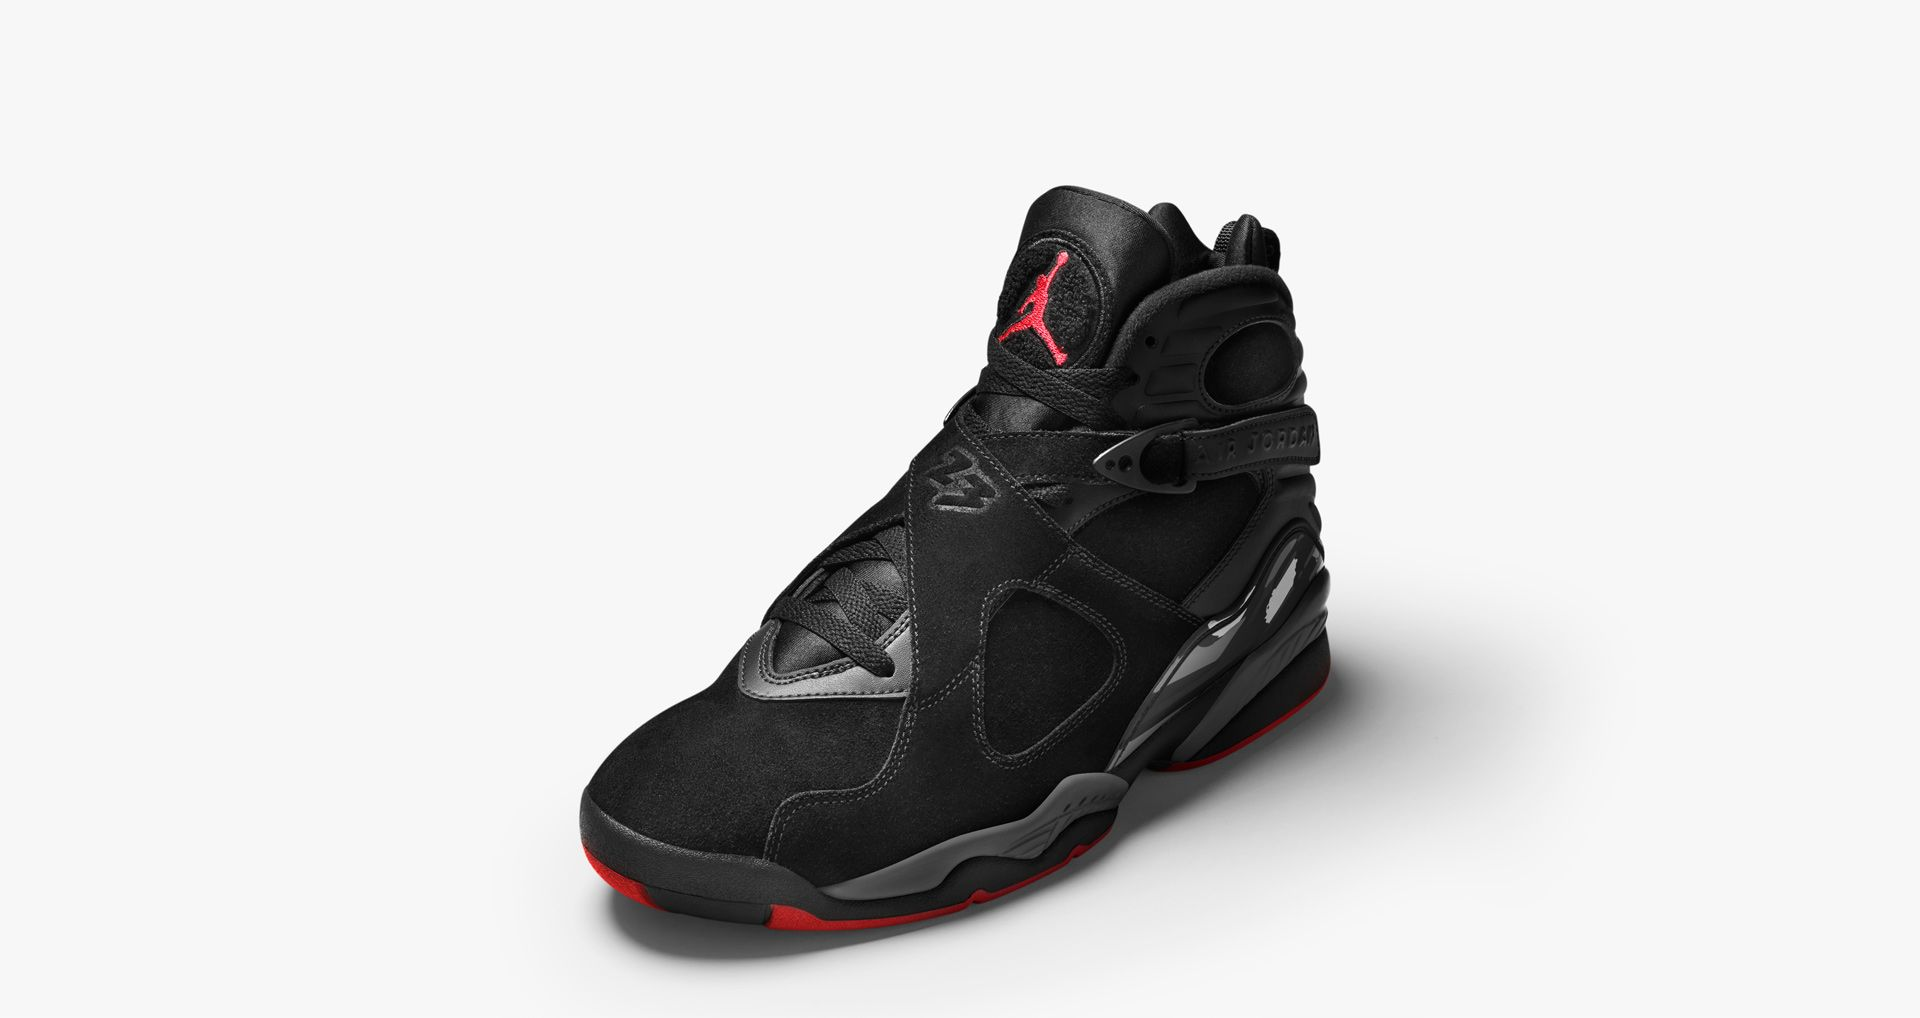 e281e6d921143a Air Jordan 8 Retro  Black   Gym Red  Release Date. Nike⁠+ SNKRS